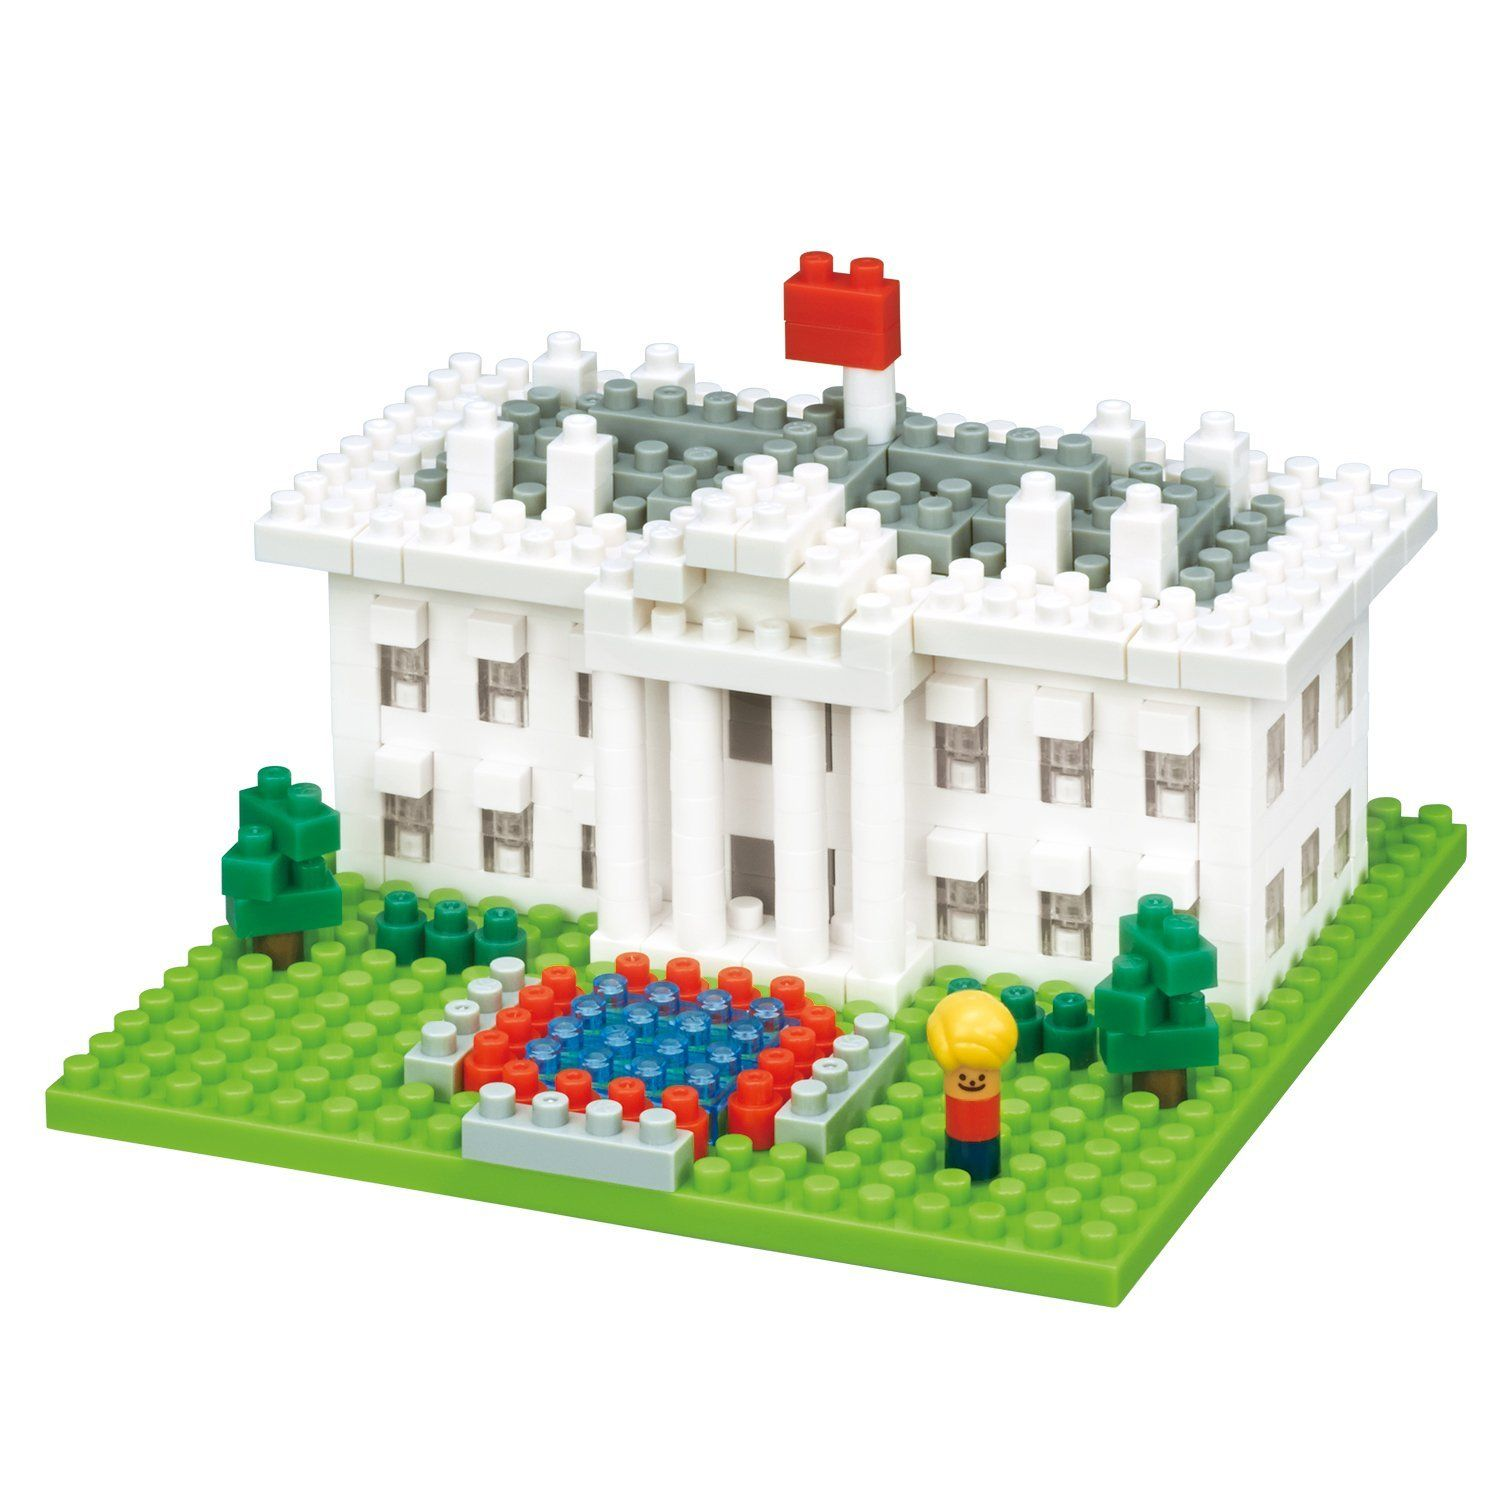 The White House Building Sets by Nanoblock (NBH144) by nanoblock